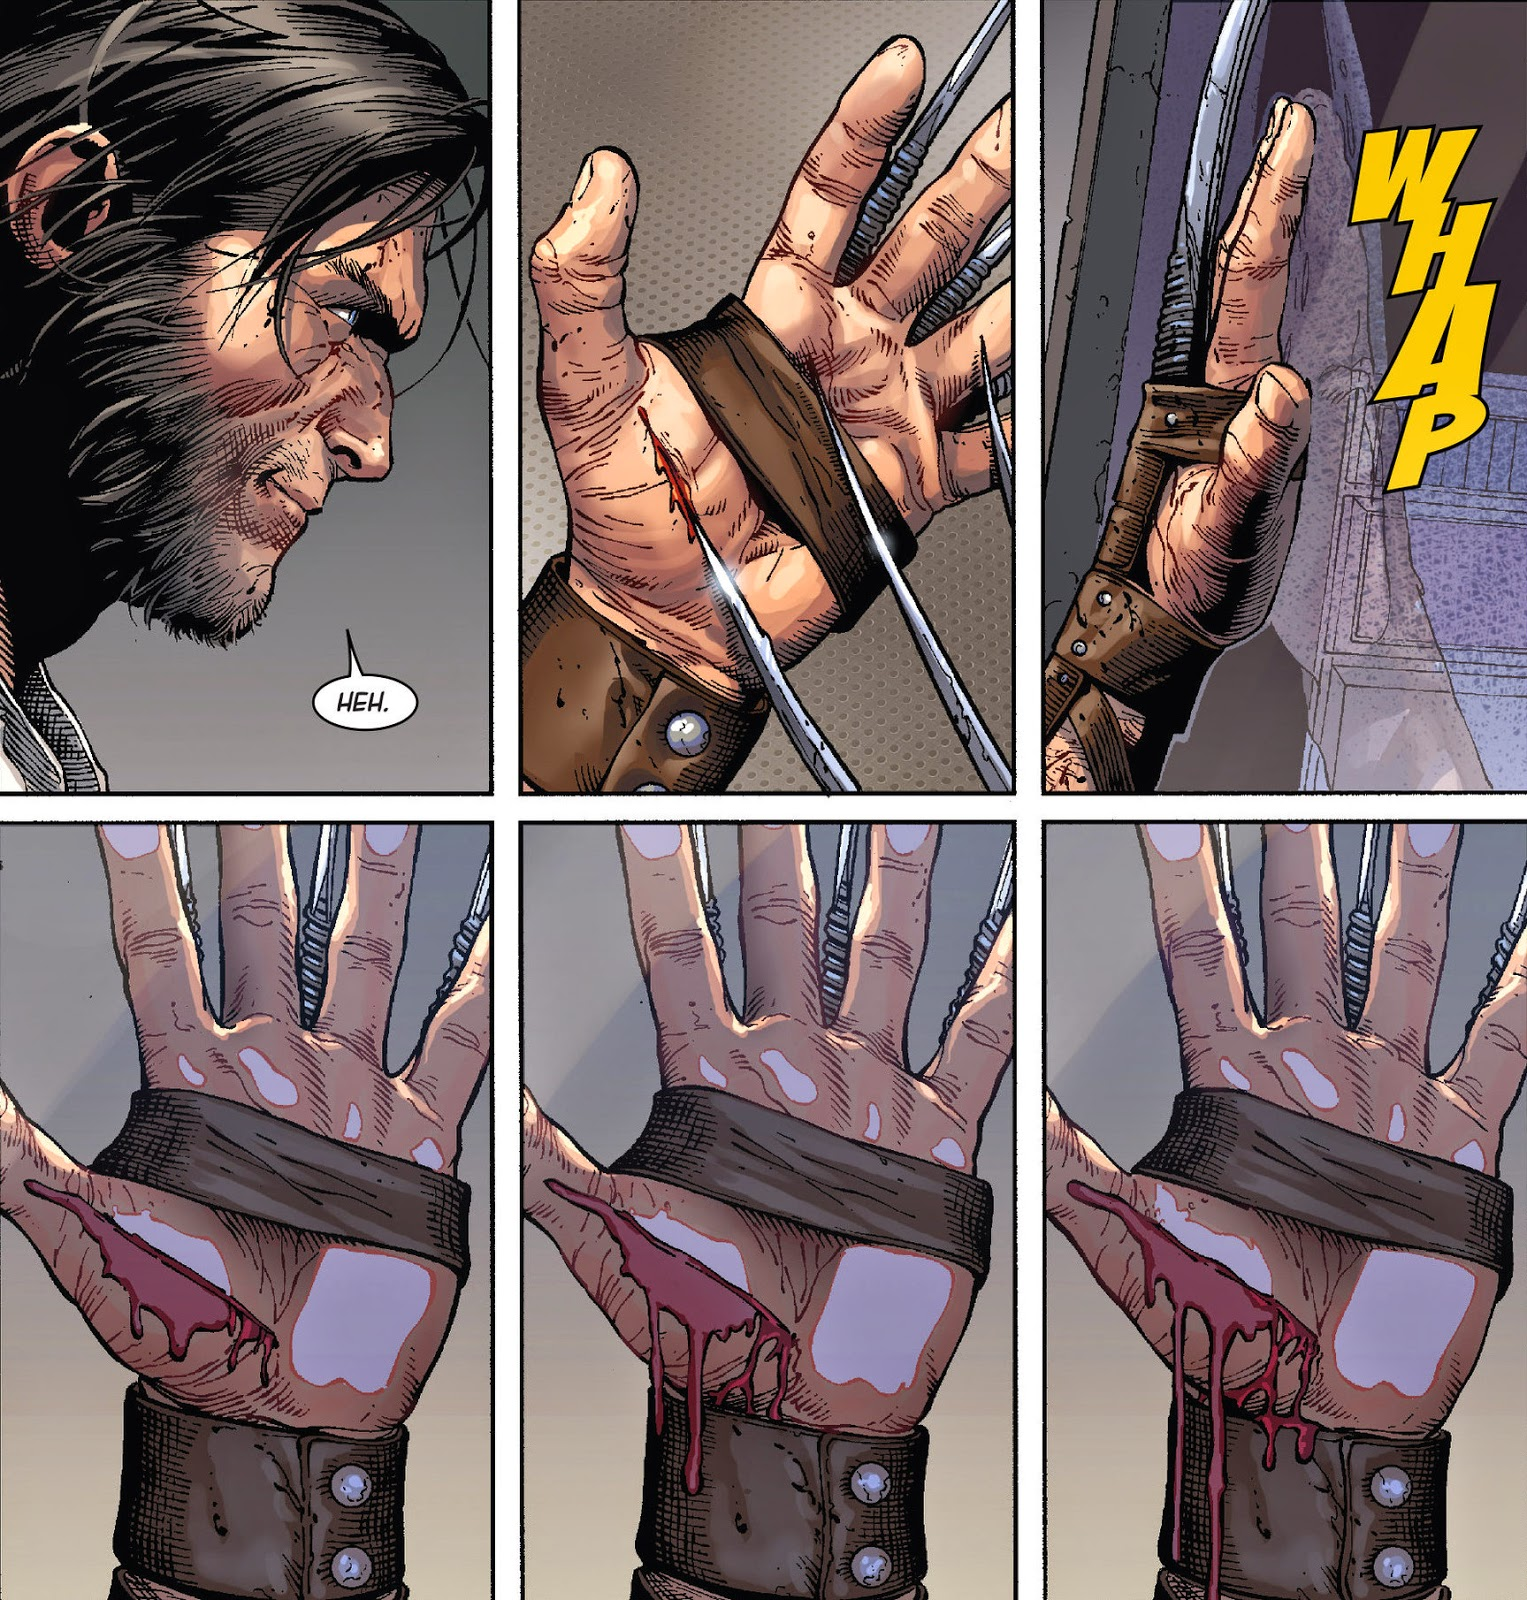 Marvels Death of Wolverine 4 interior art by Steve McNiven